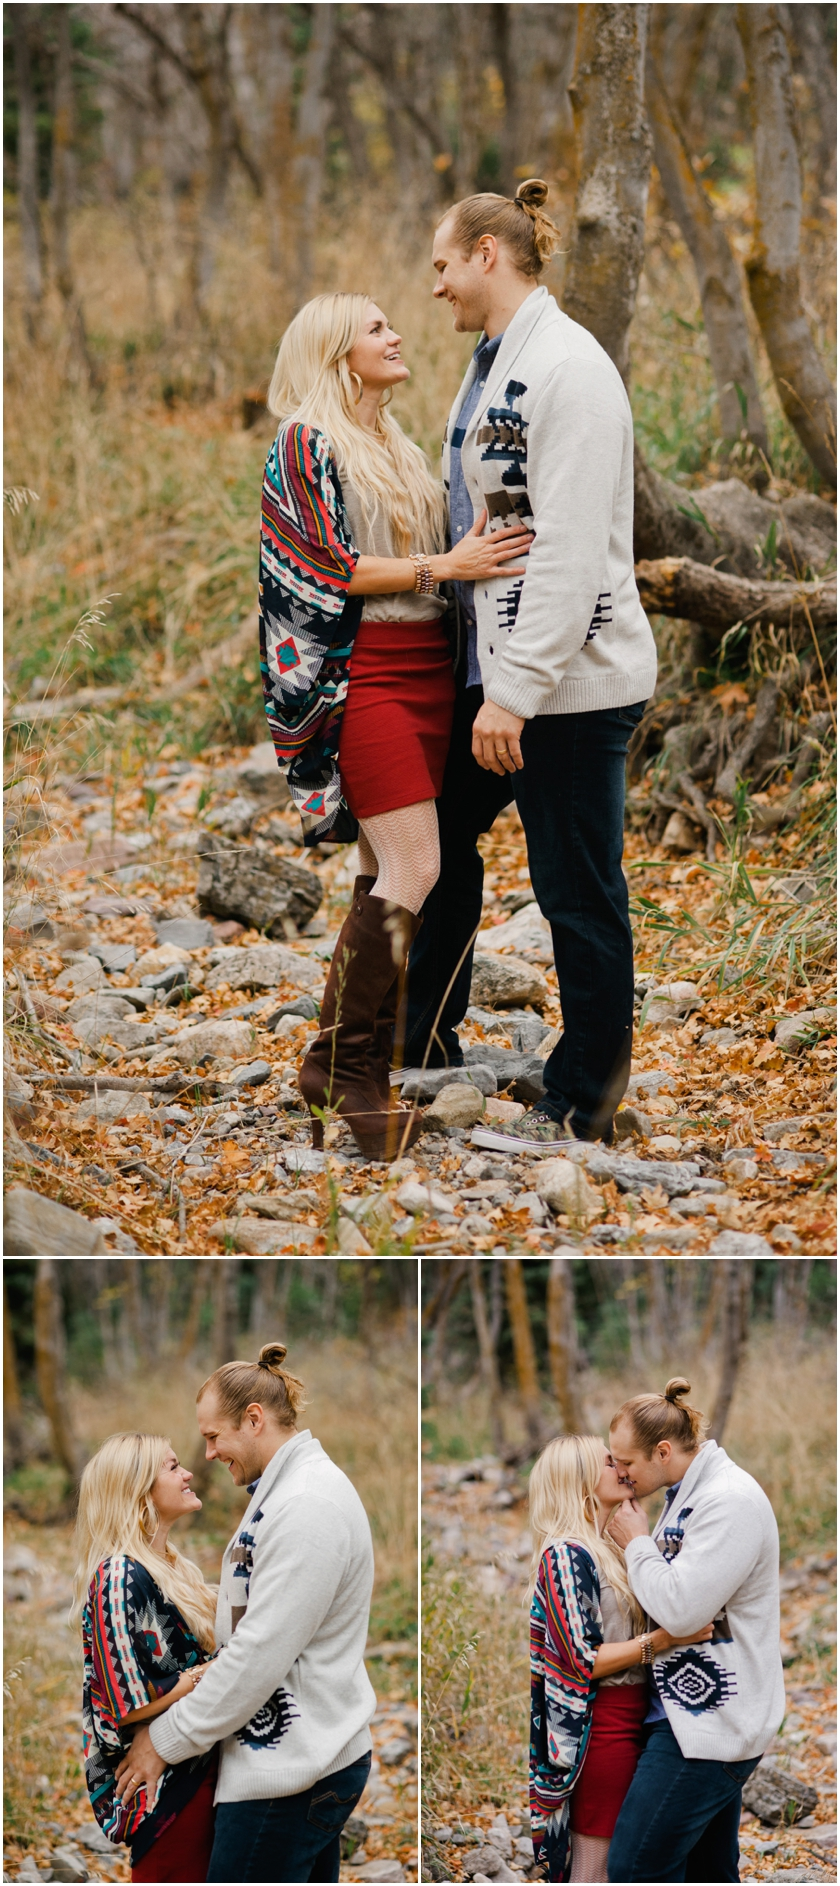 022Amy Cloud Photography Utah Wedding Photographer